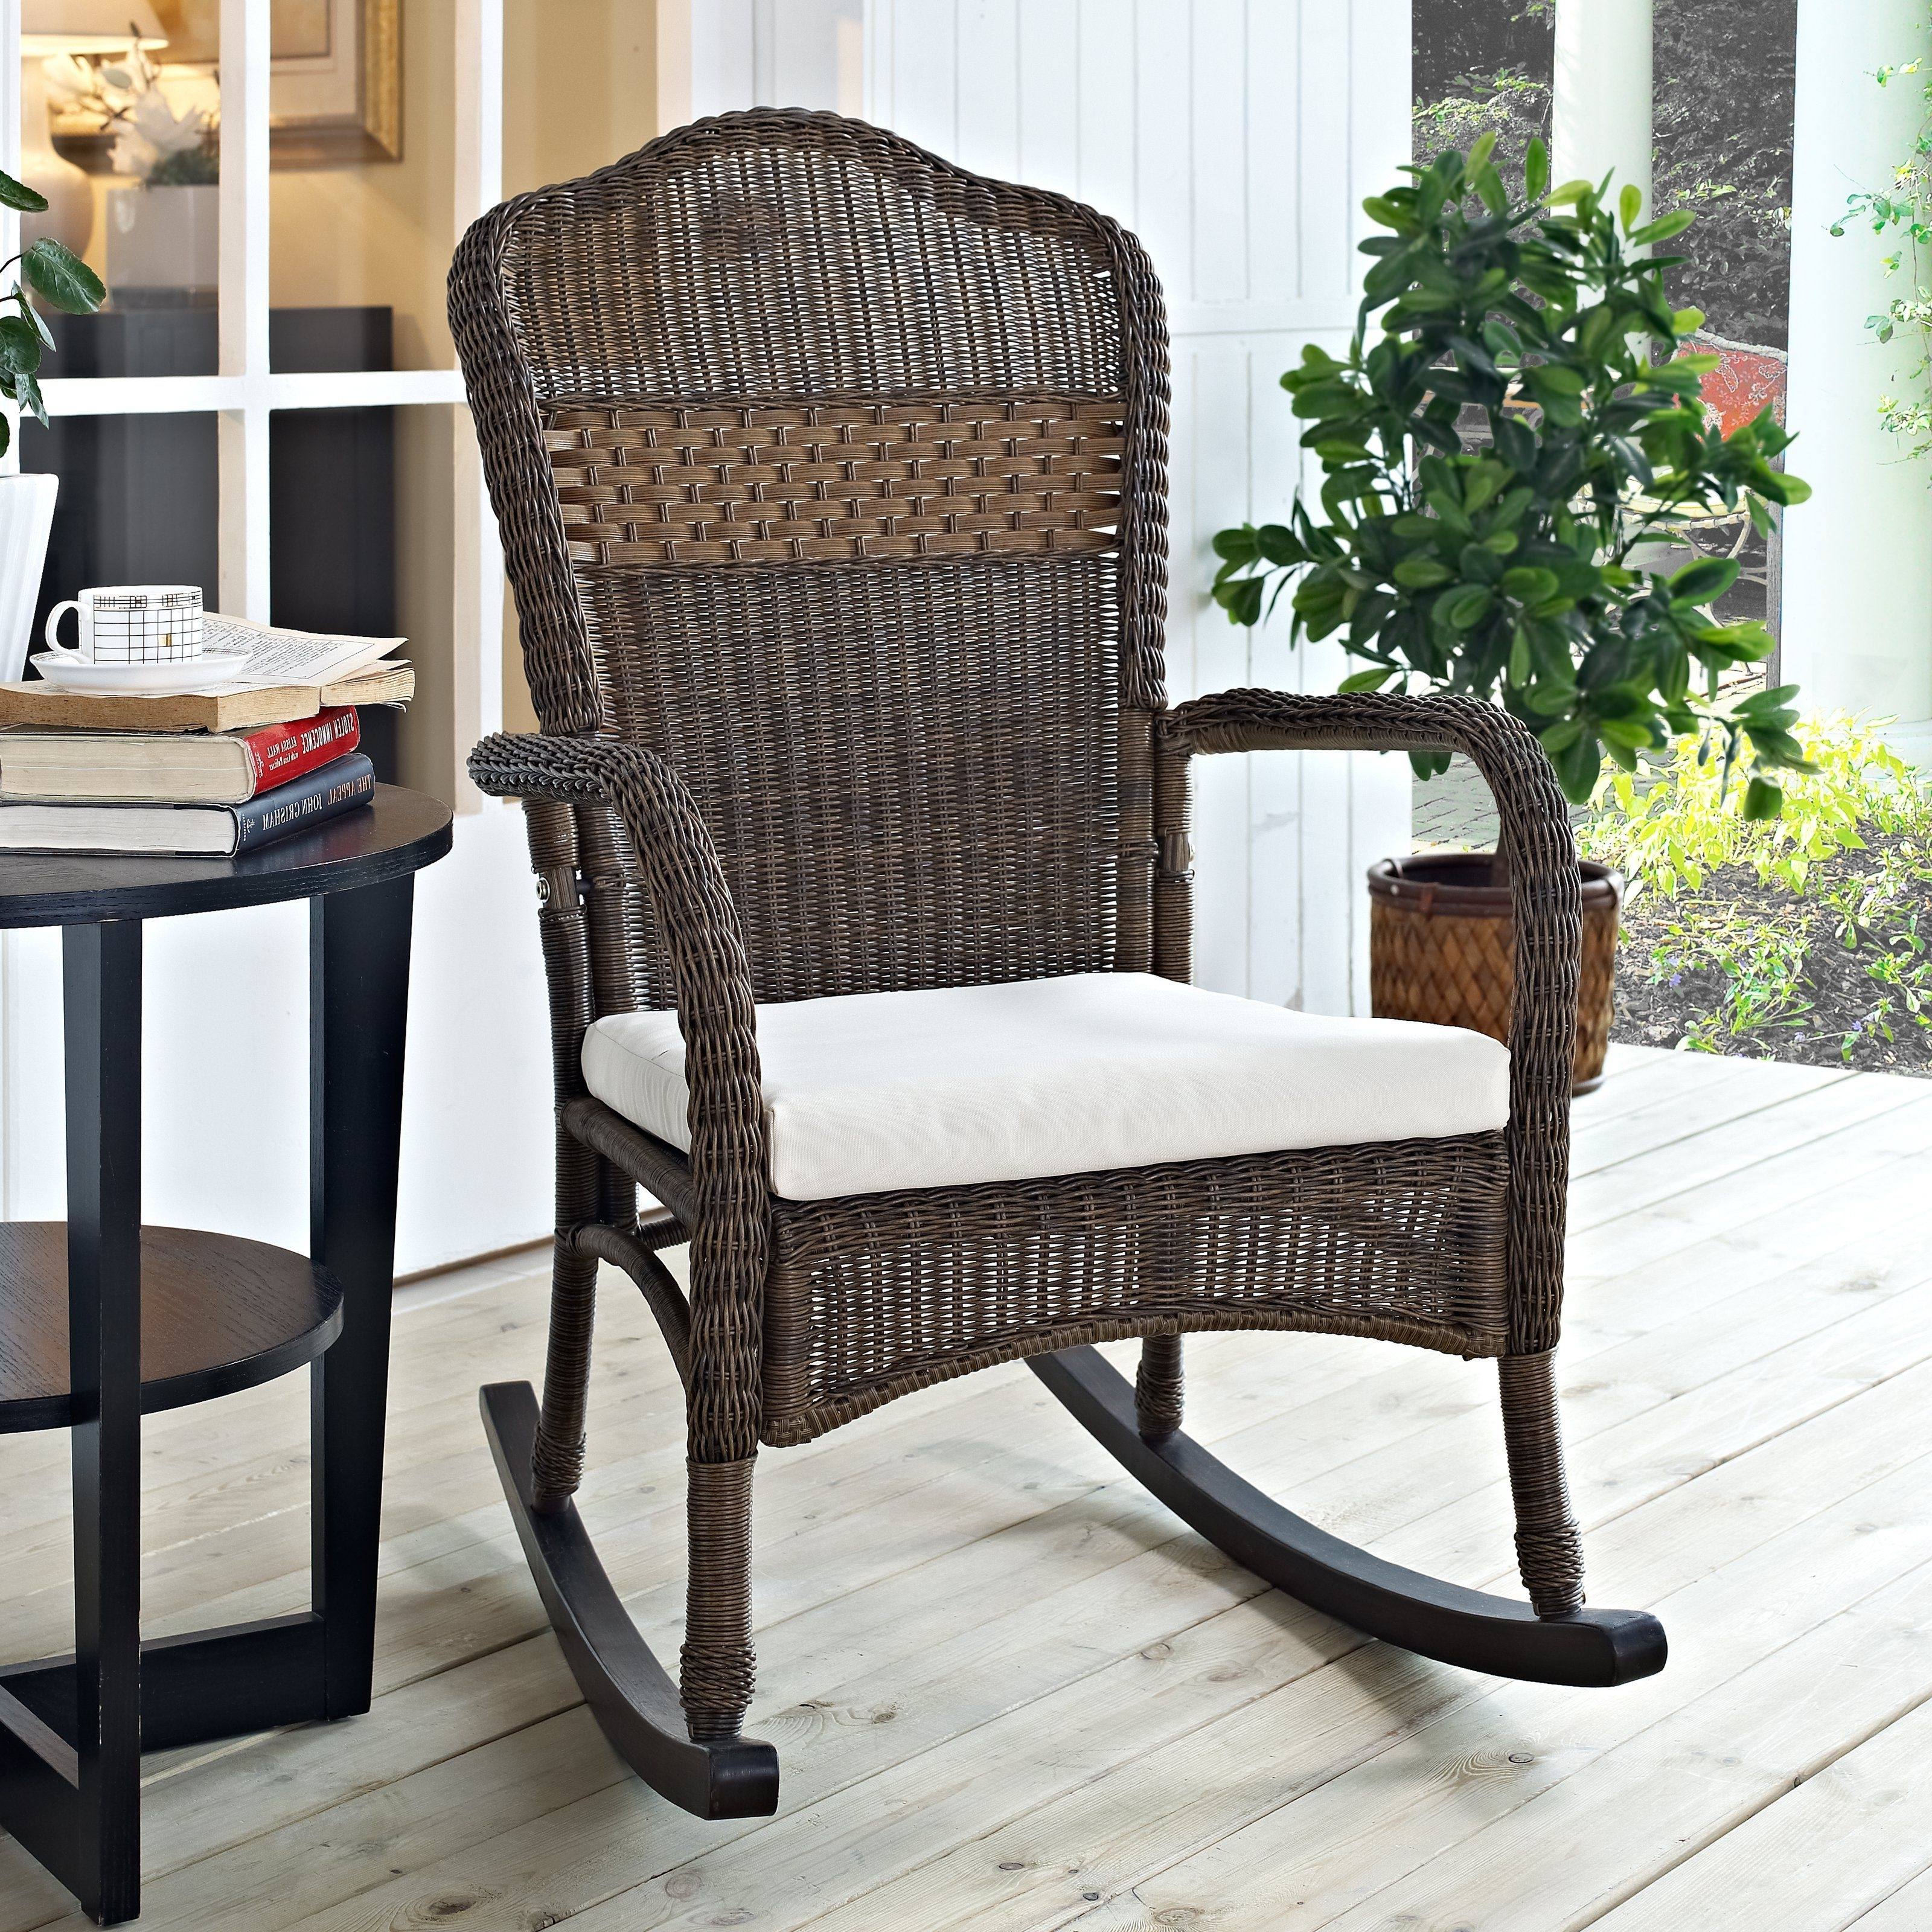 Well Liked Outdoor Coral Coast Mocha Resin Wicker Rocking Chair With Beige With Regard To Rattan Outdoor Rocking Chairs (View 3 of 15)